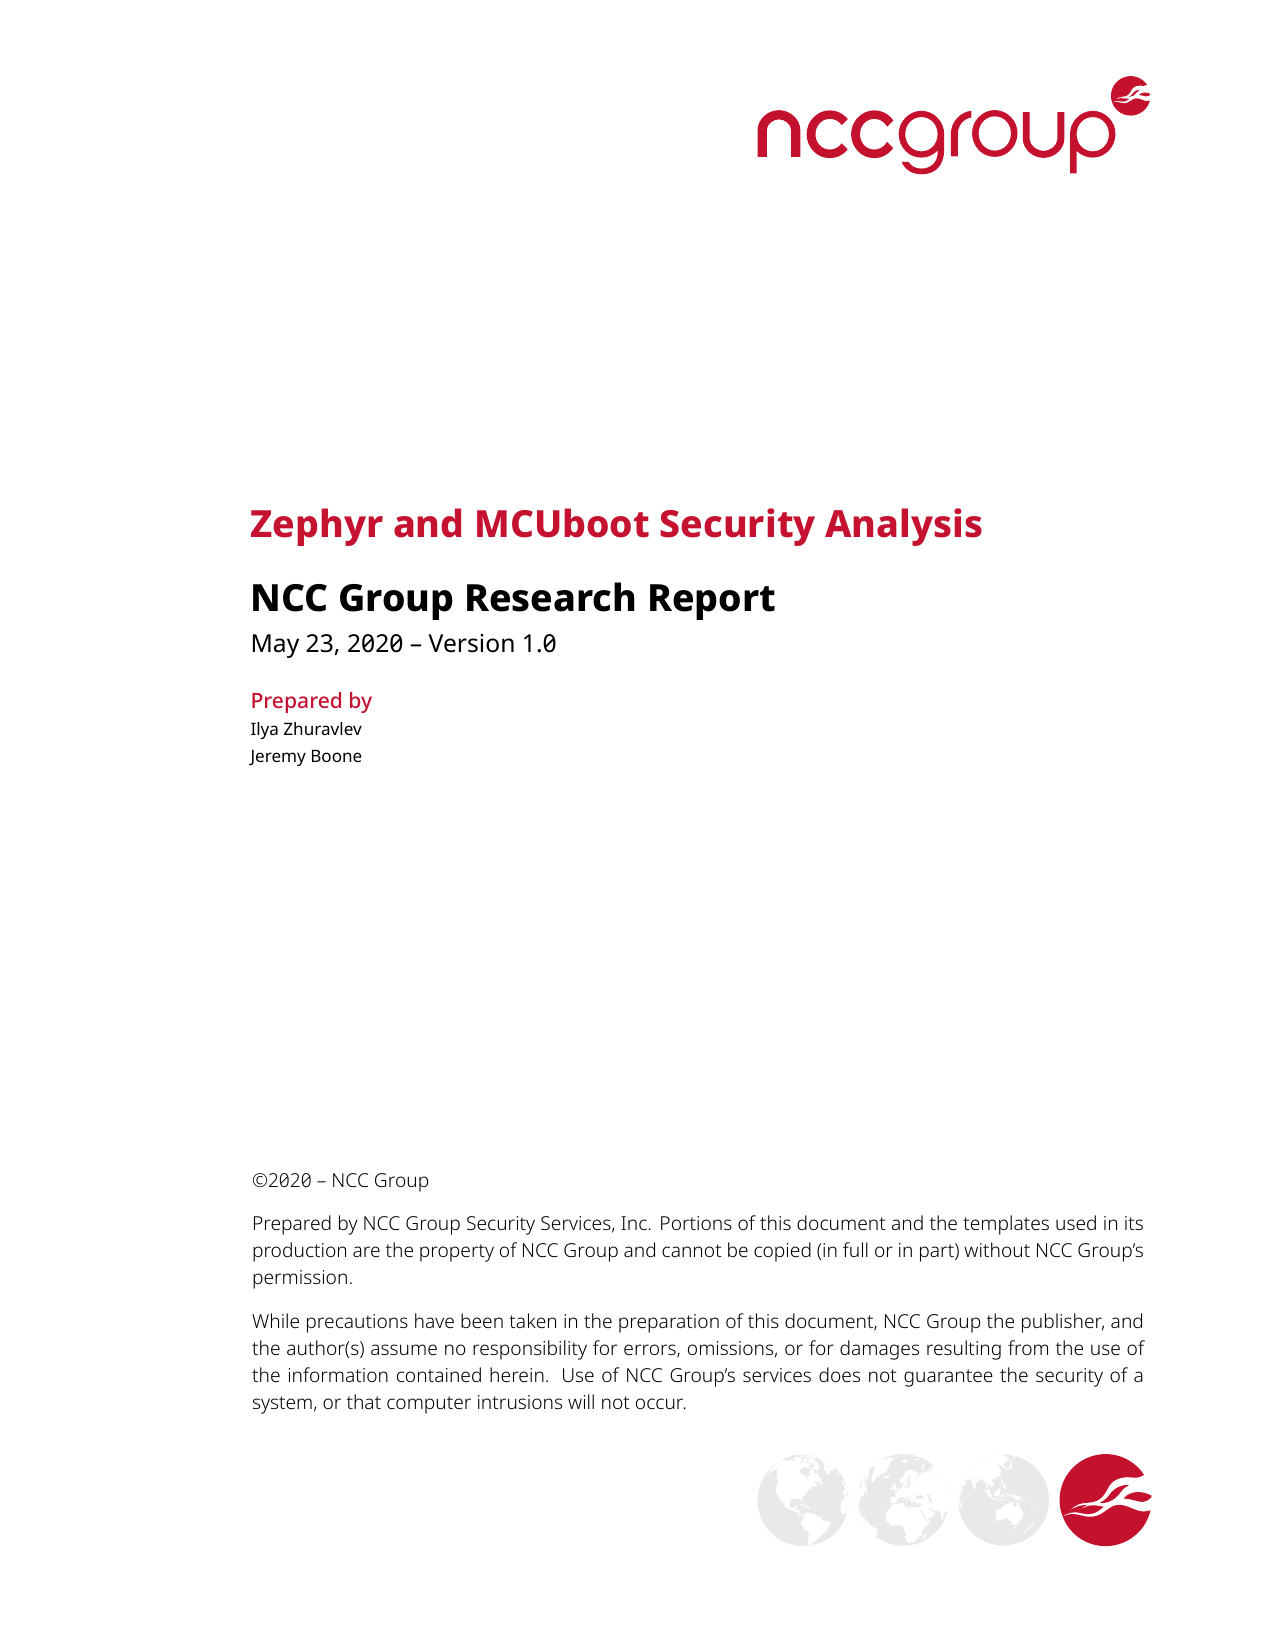 First page of the 'NCC Group Zephyr MCUboot Research Report 2020-05-26 v1.0' PDF